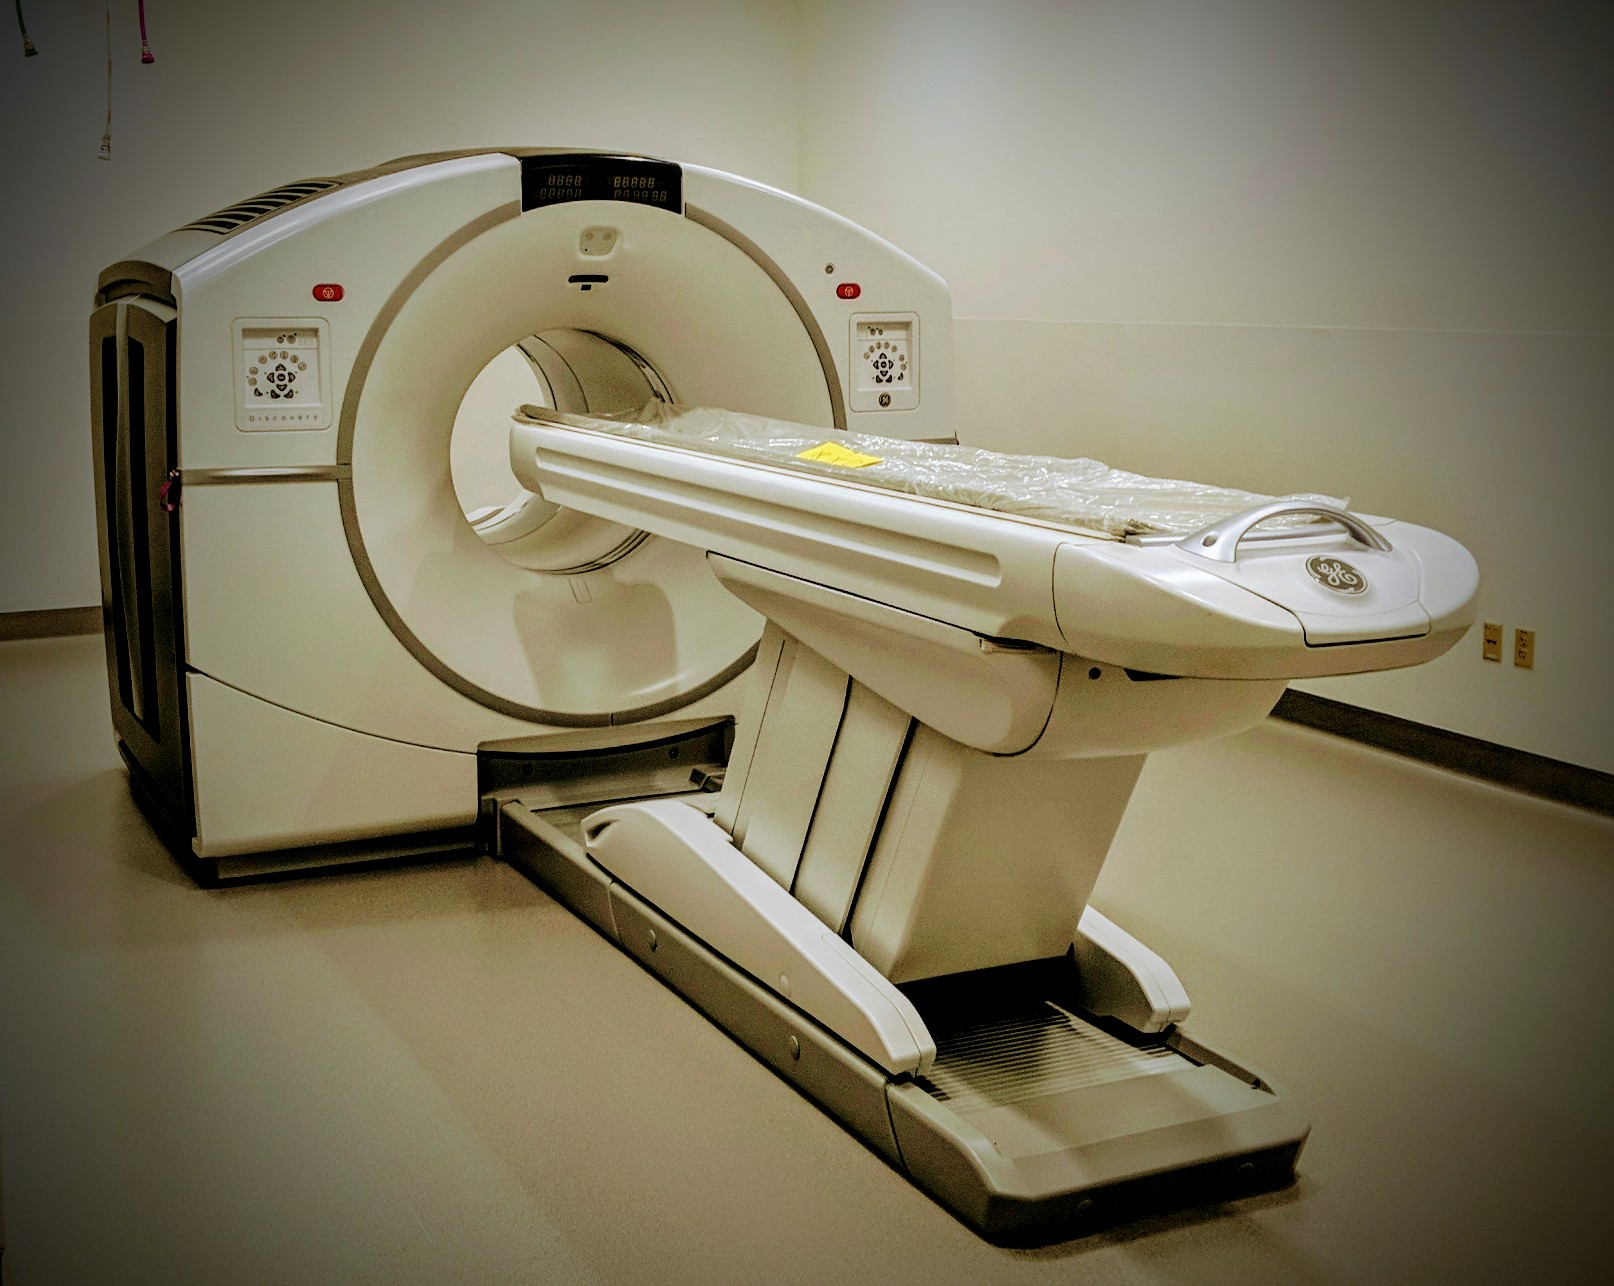 GE Discovery MI PET/CT Scanner